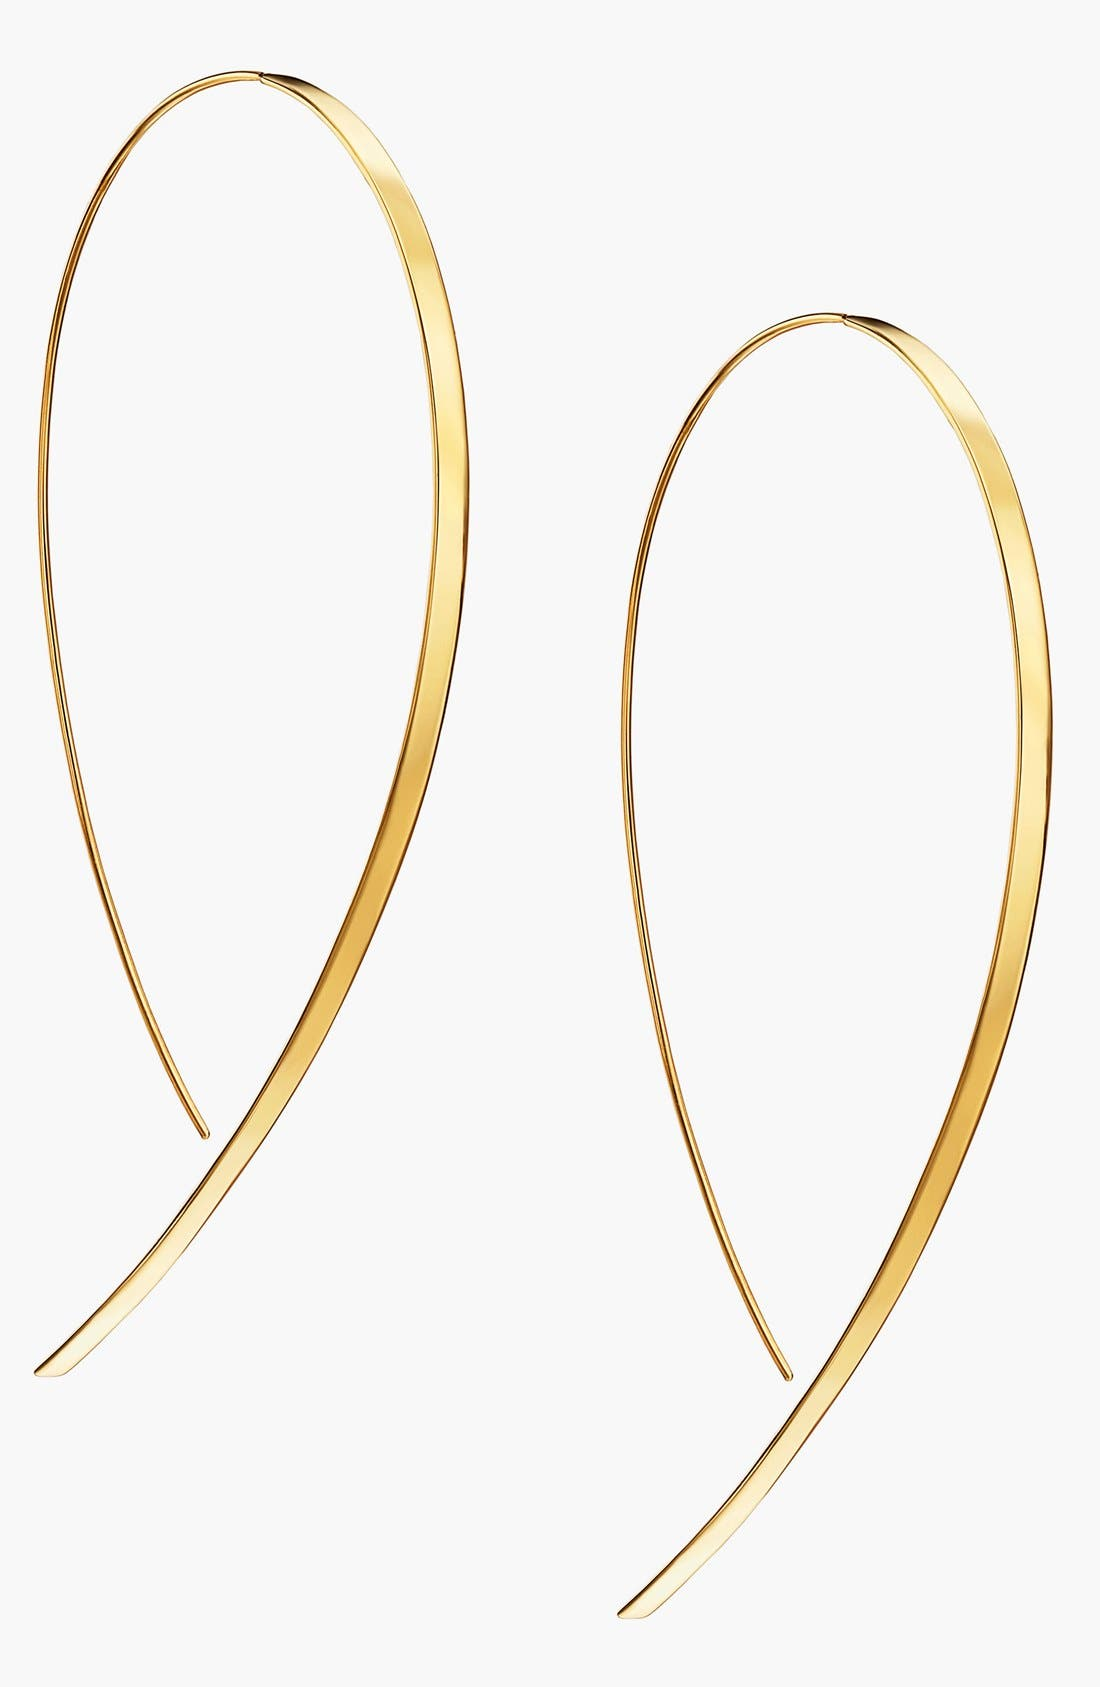 Alternate Image 1 Selected - Lana Jewelry 'Hooked On Hoop' Large Flat Earrings